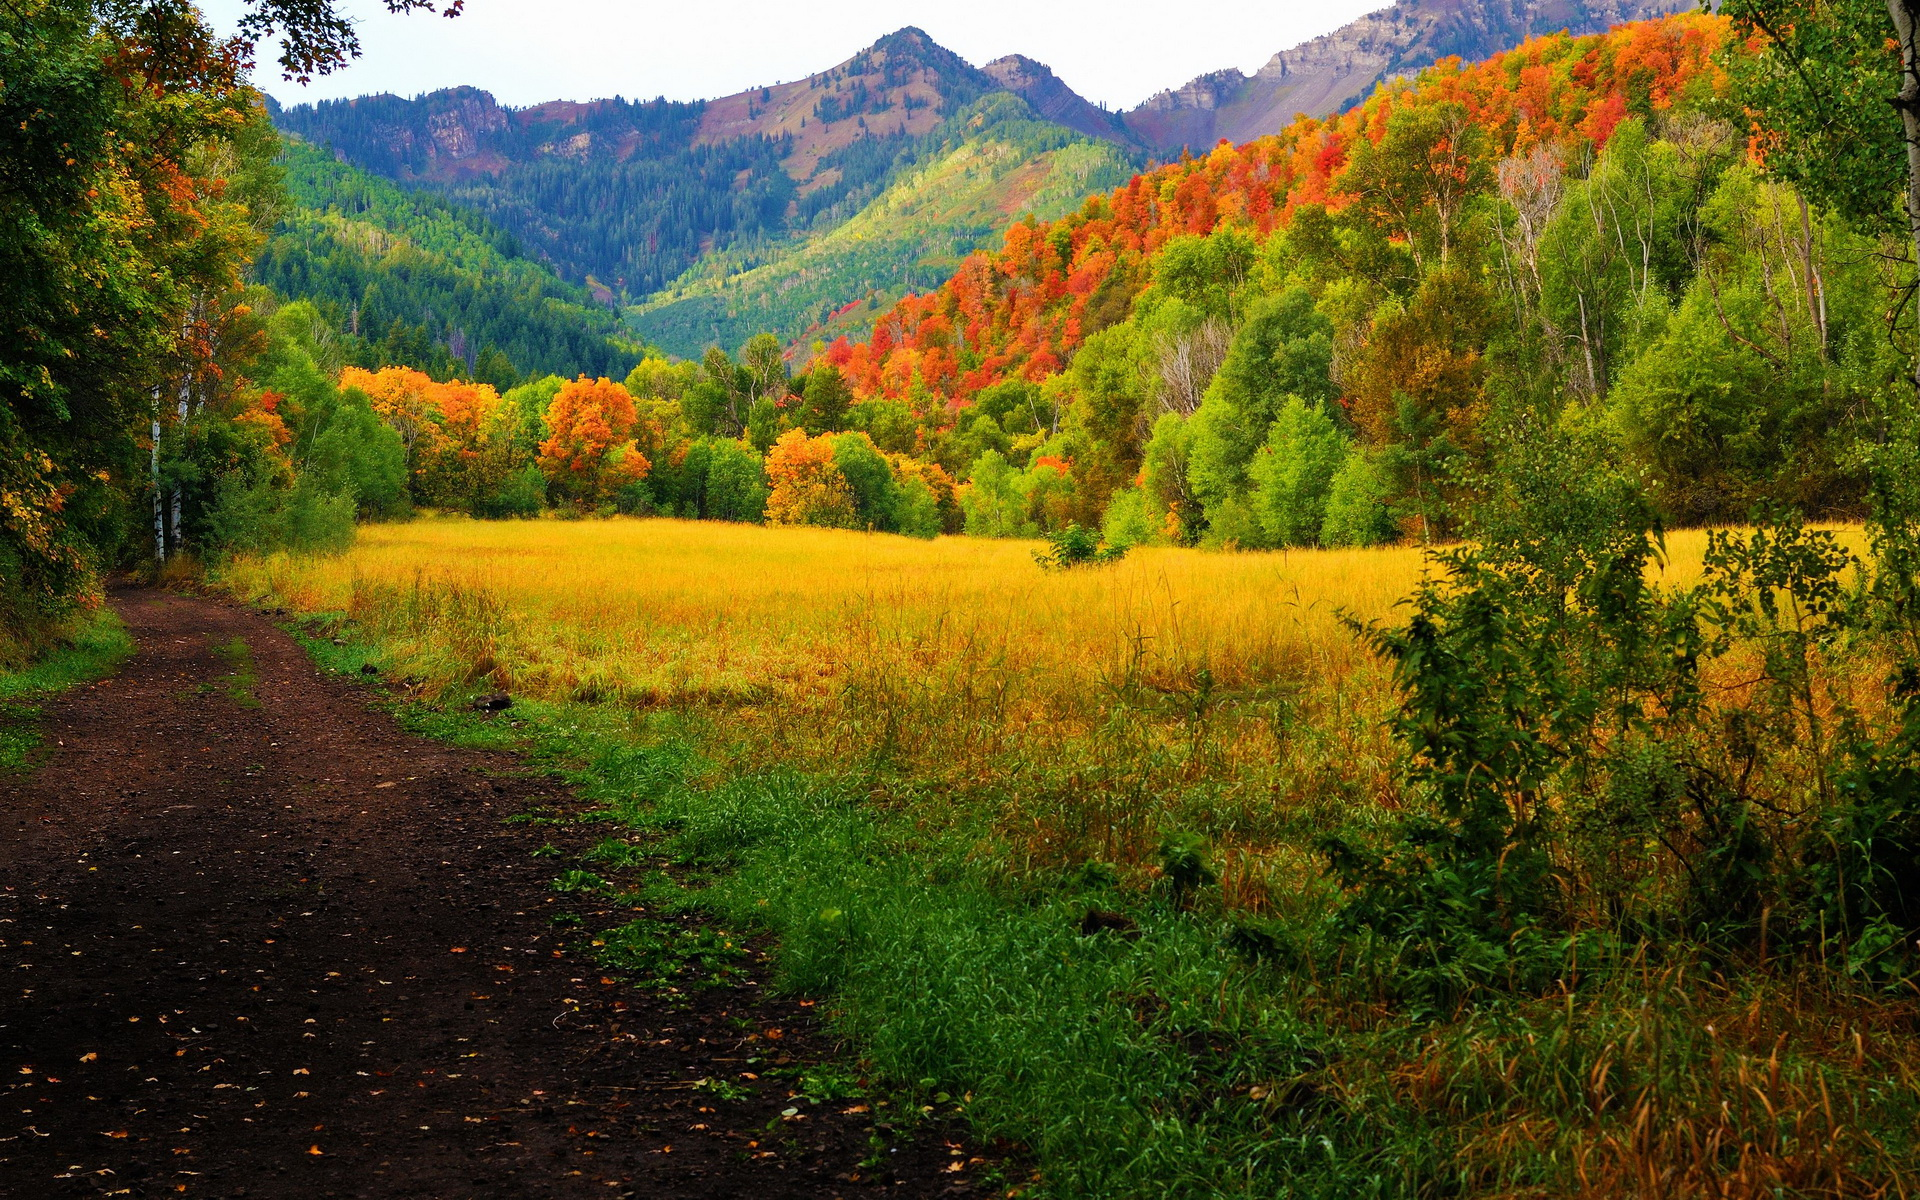 1280x1024 Fall Wallpaper Provo Canyon Fall Colors Full Hd Wallpaper And Background